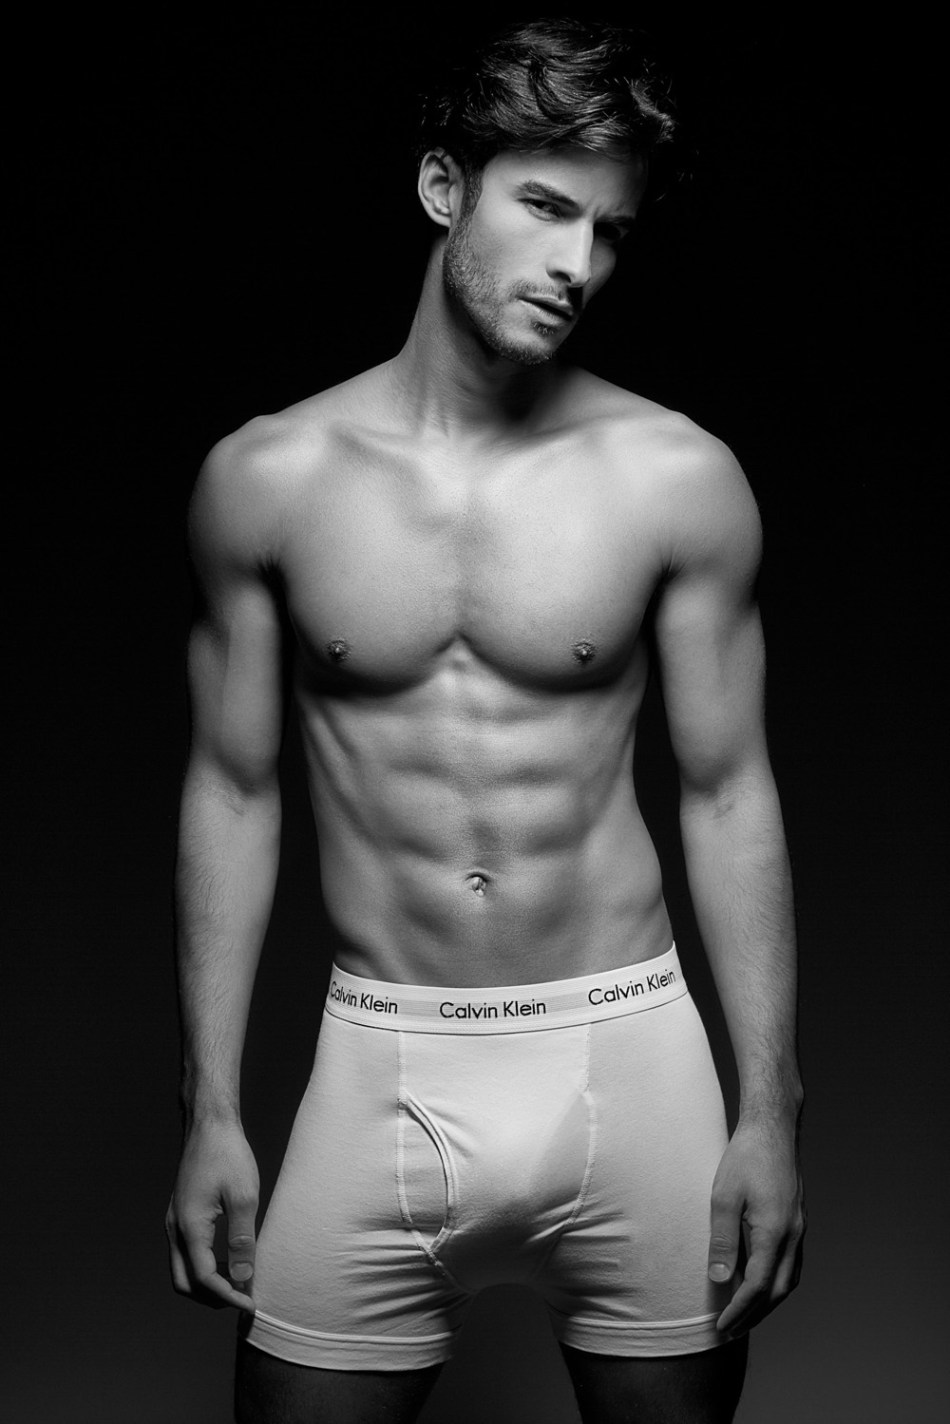 New editorial for CK shot by Julian Restrepo feat. Renato Freitas (mother agency Fly Models), Next Model Miami.